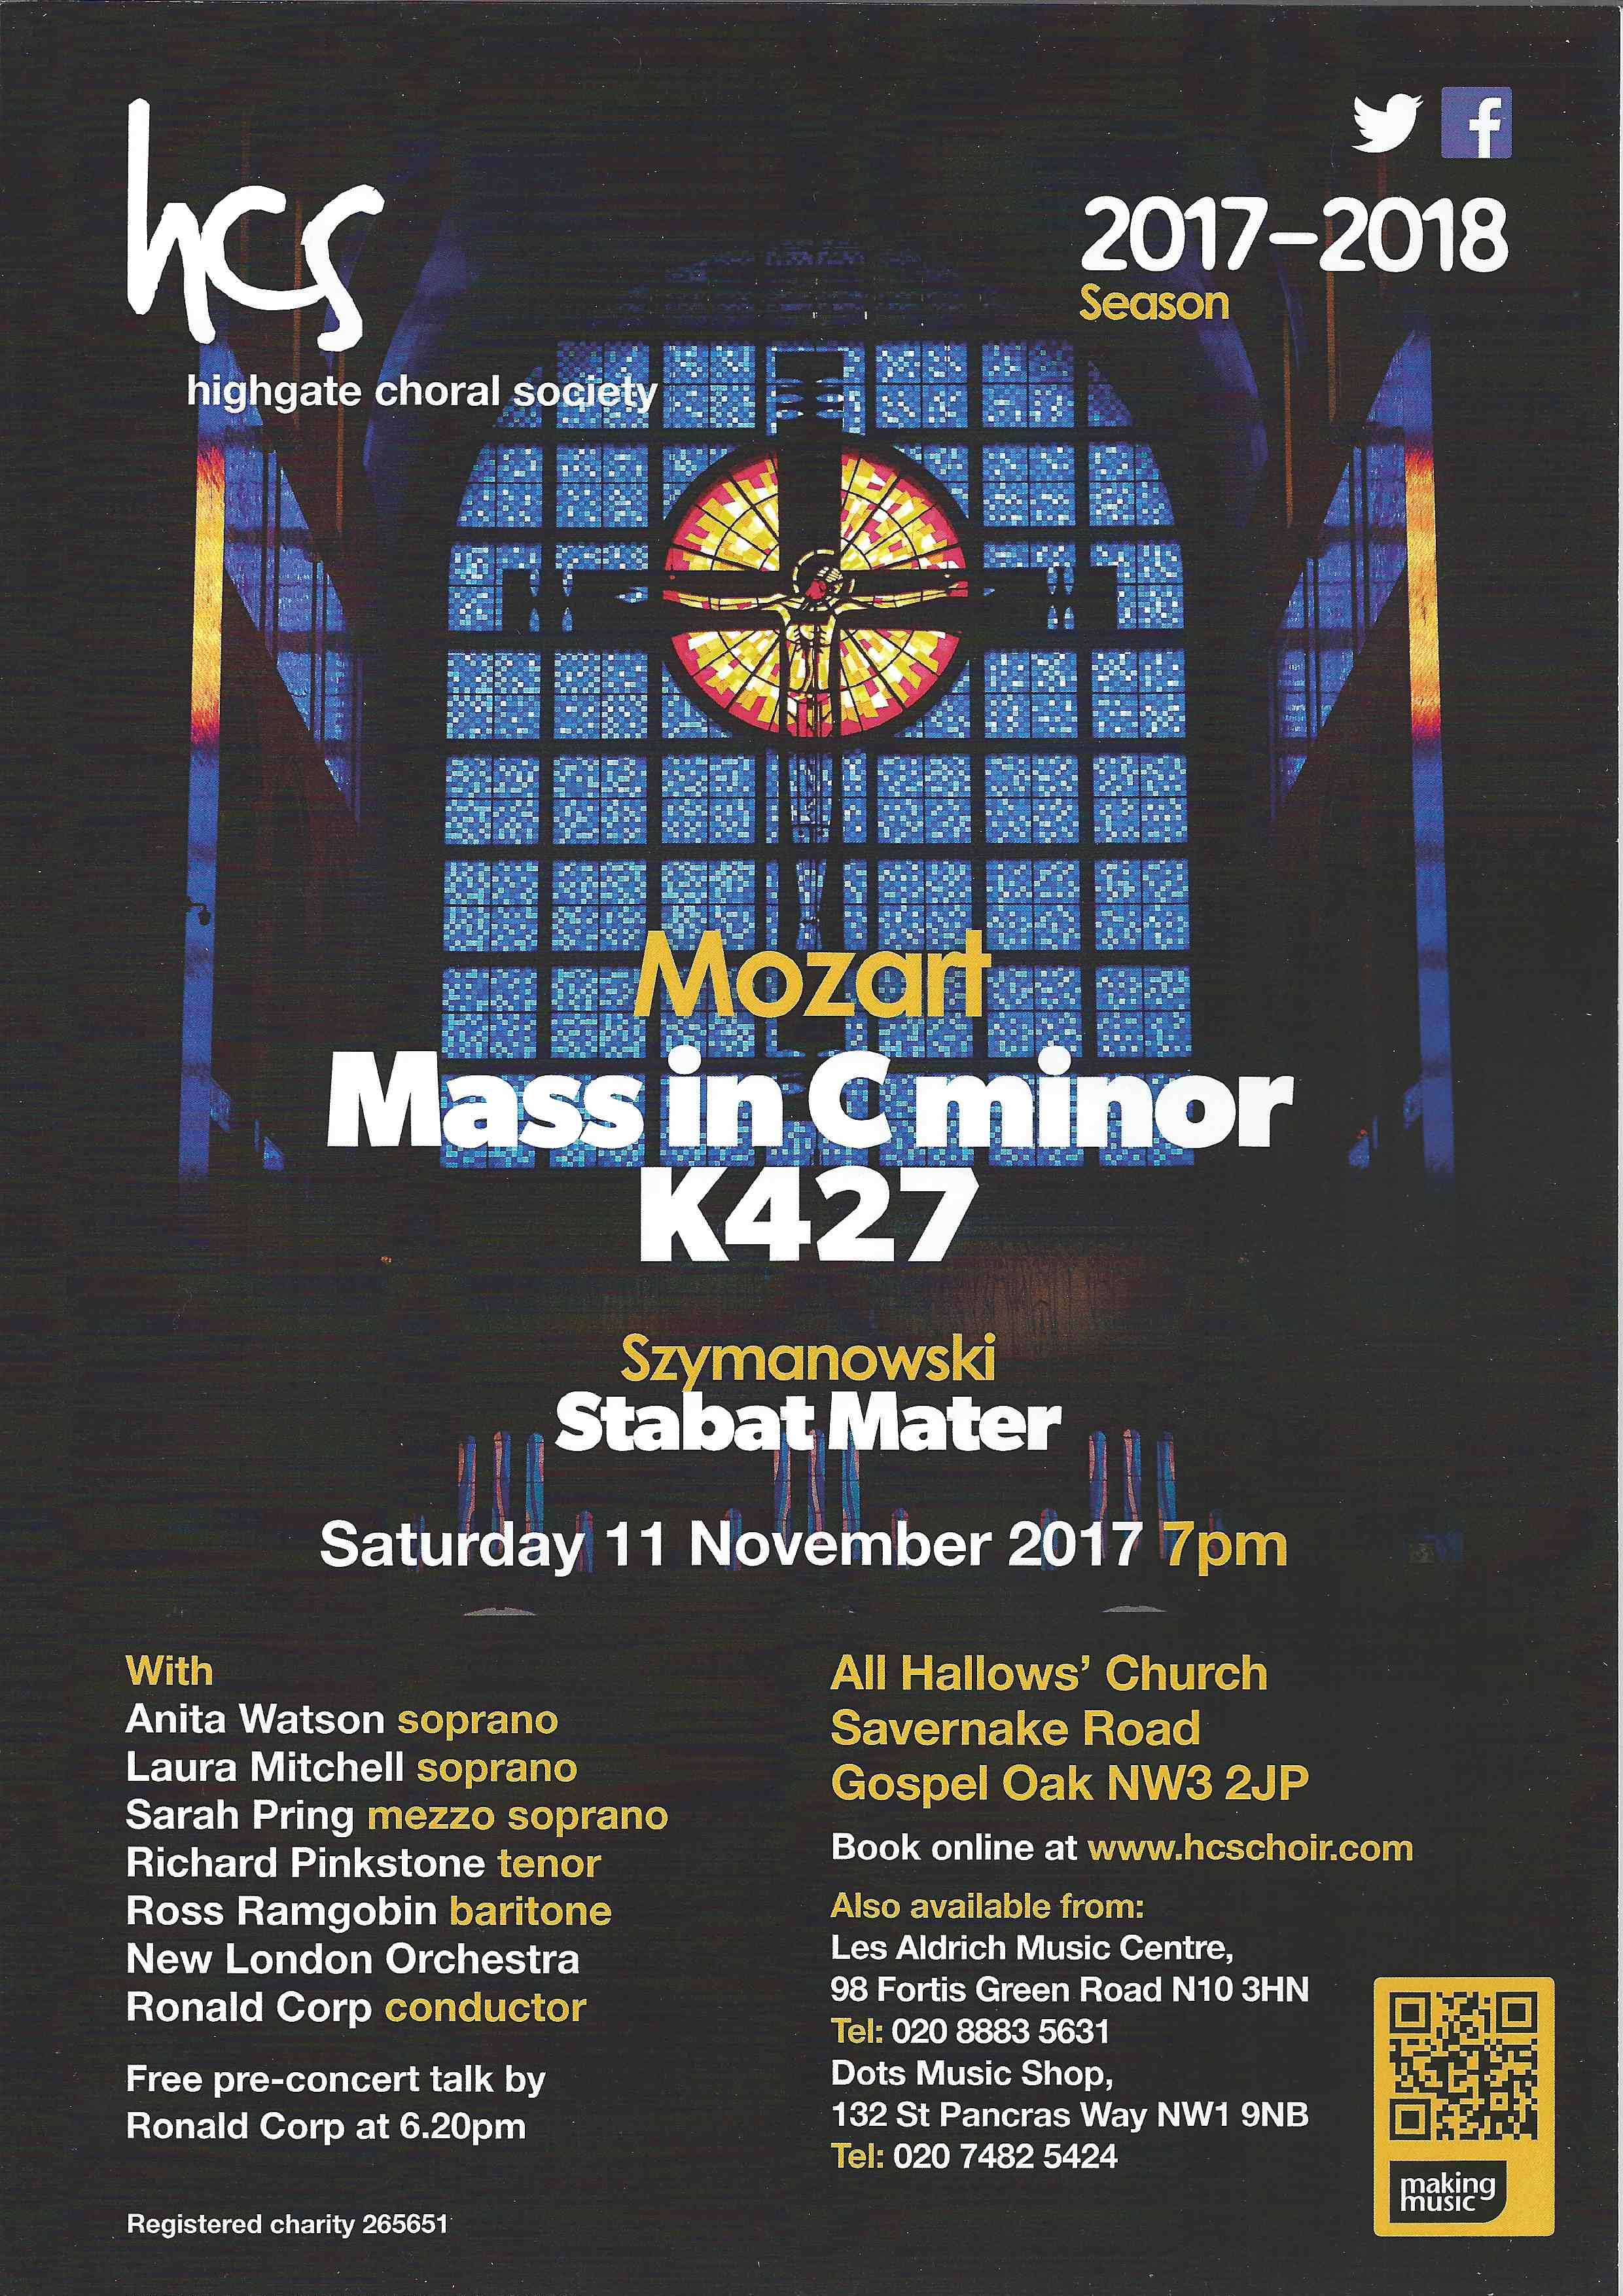 Previous concerts - The Highgate Choral Society